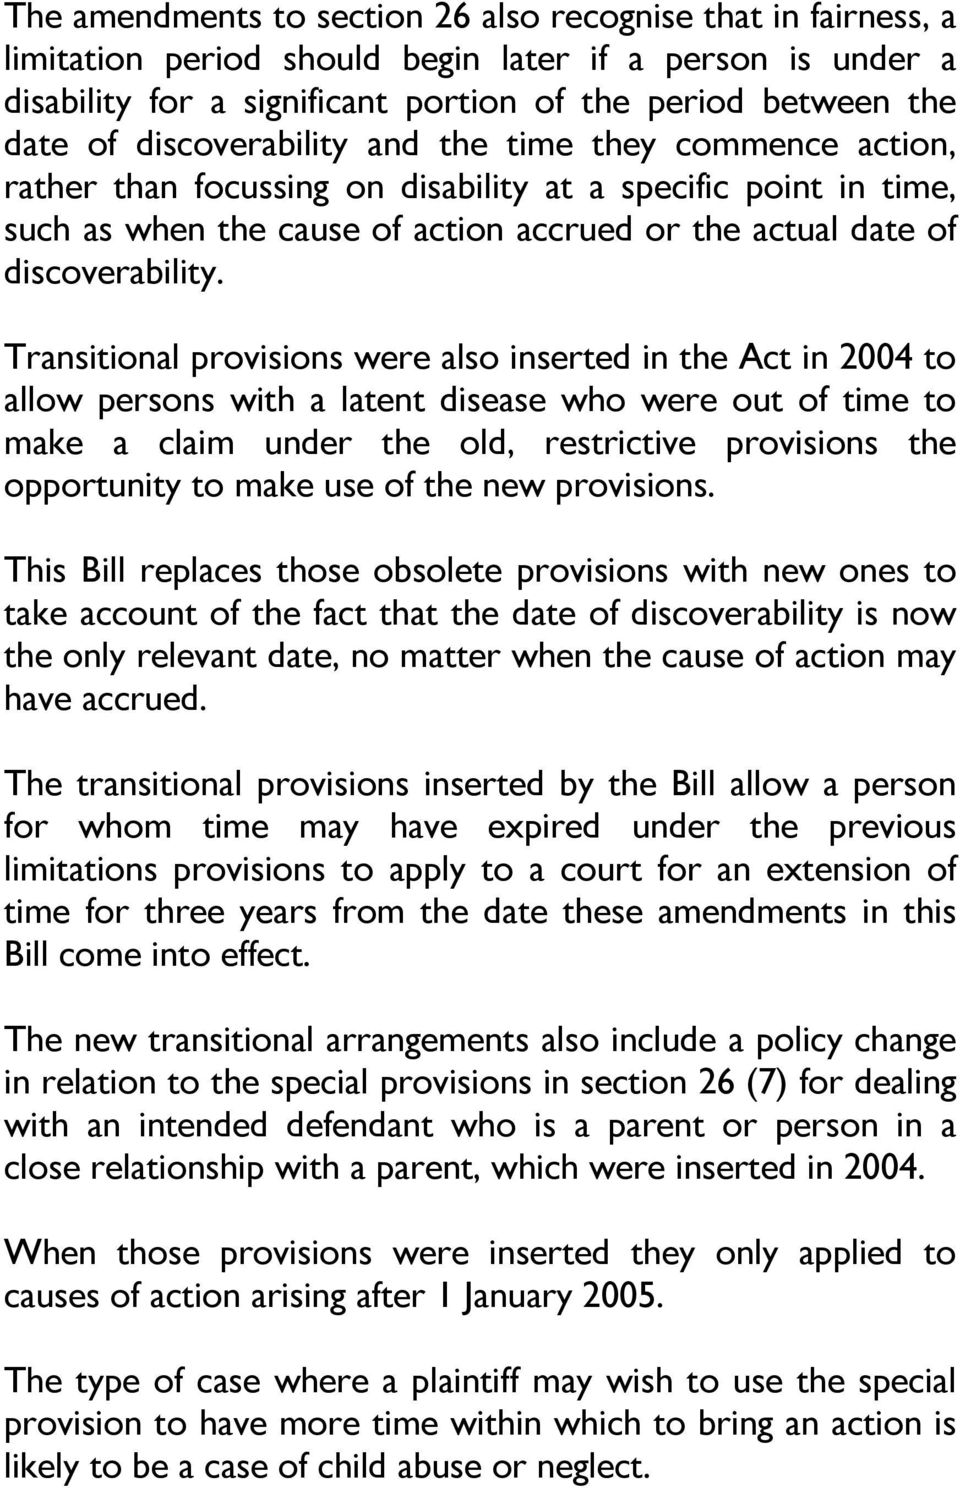 Transitional provisions were also inserted in the Act in 2004 to allow persons with a latent disease who were out of time to make a claim under the old, restrictive provisions the opportunity to make